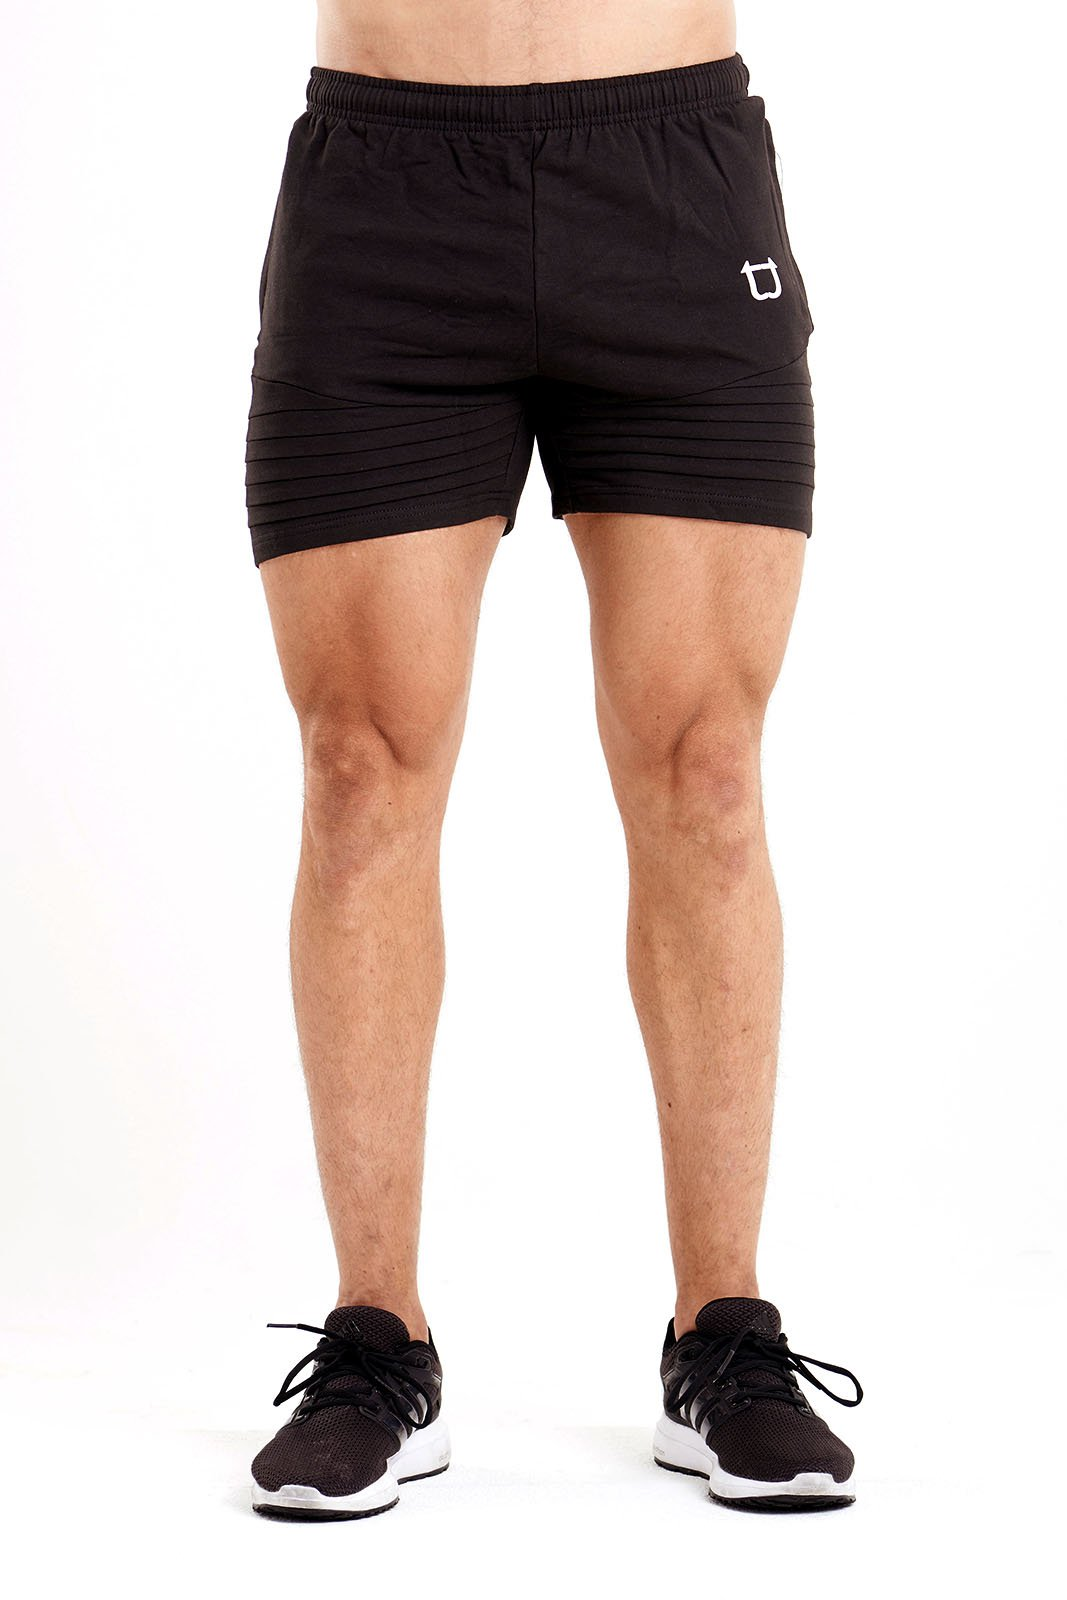 Twotags Ultra Sweat Shorts - Black